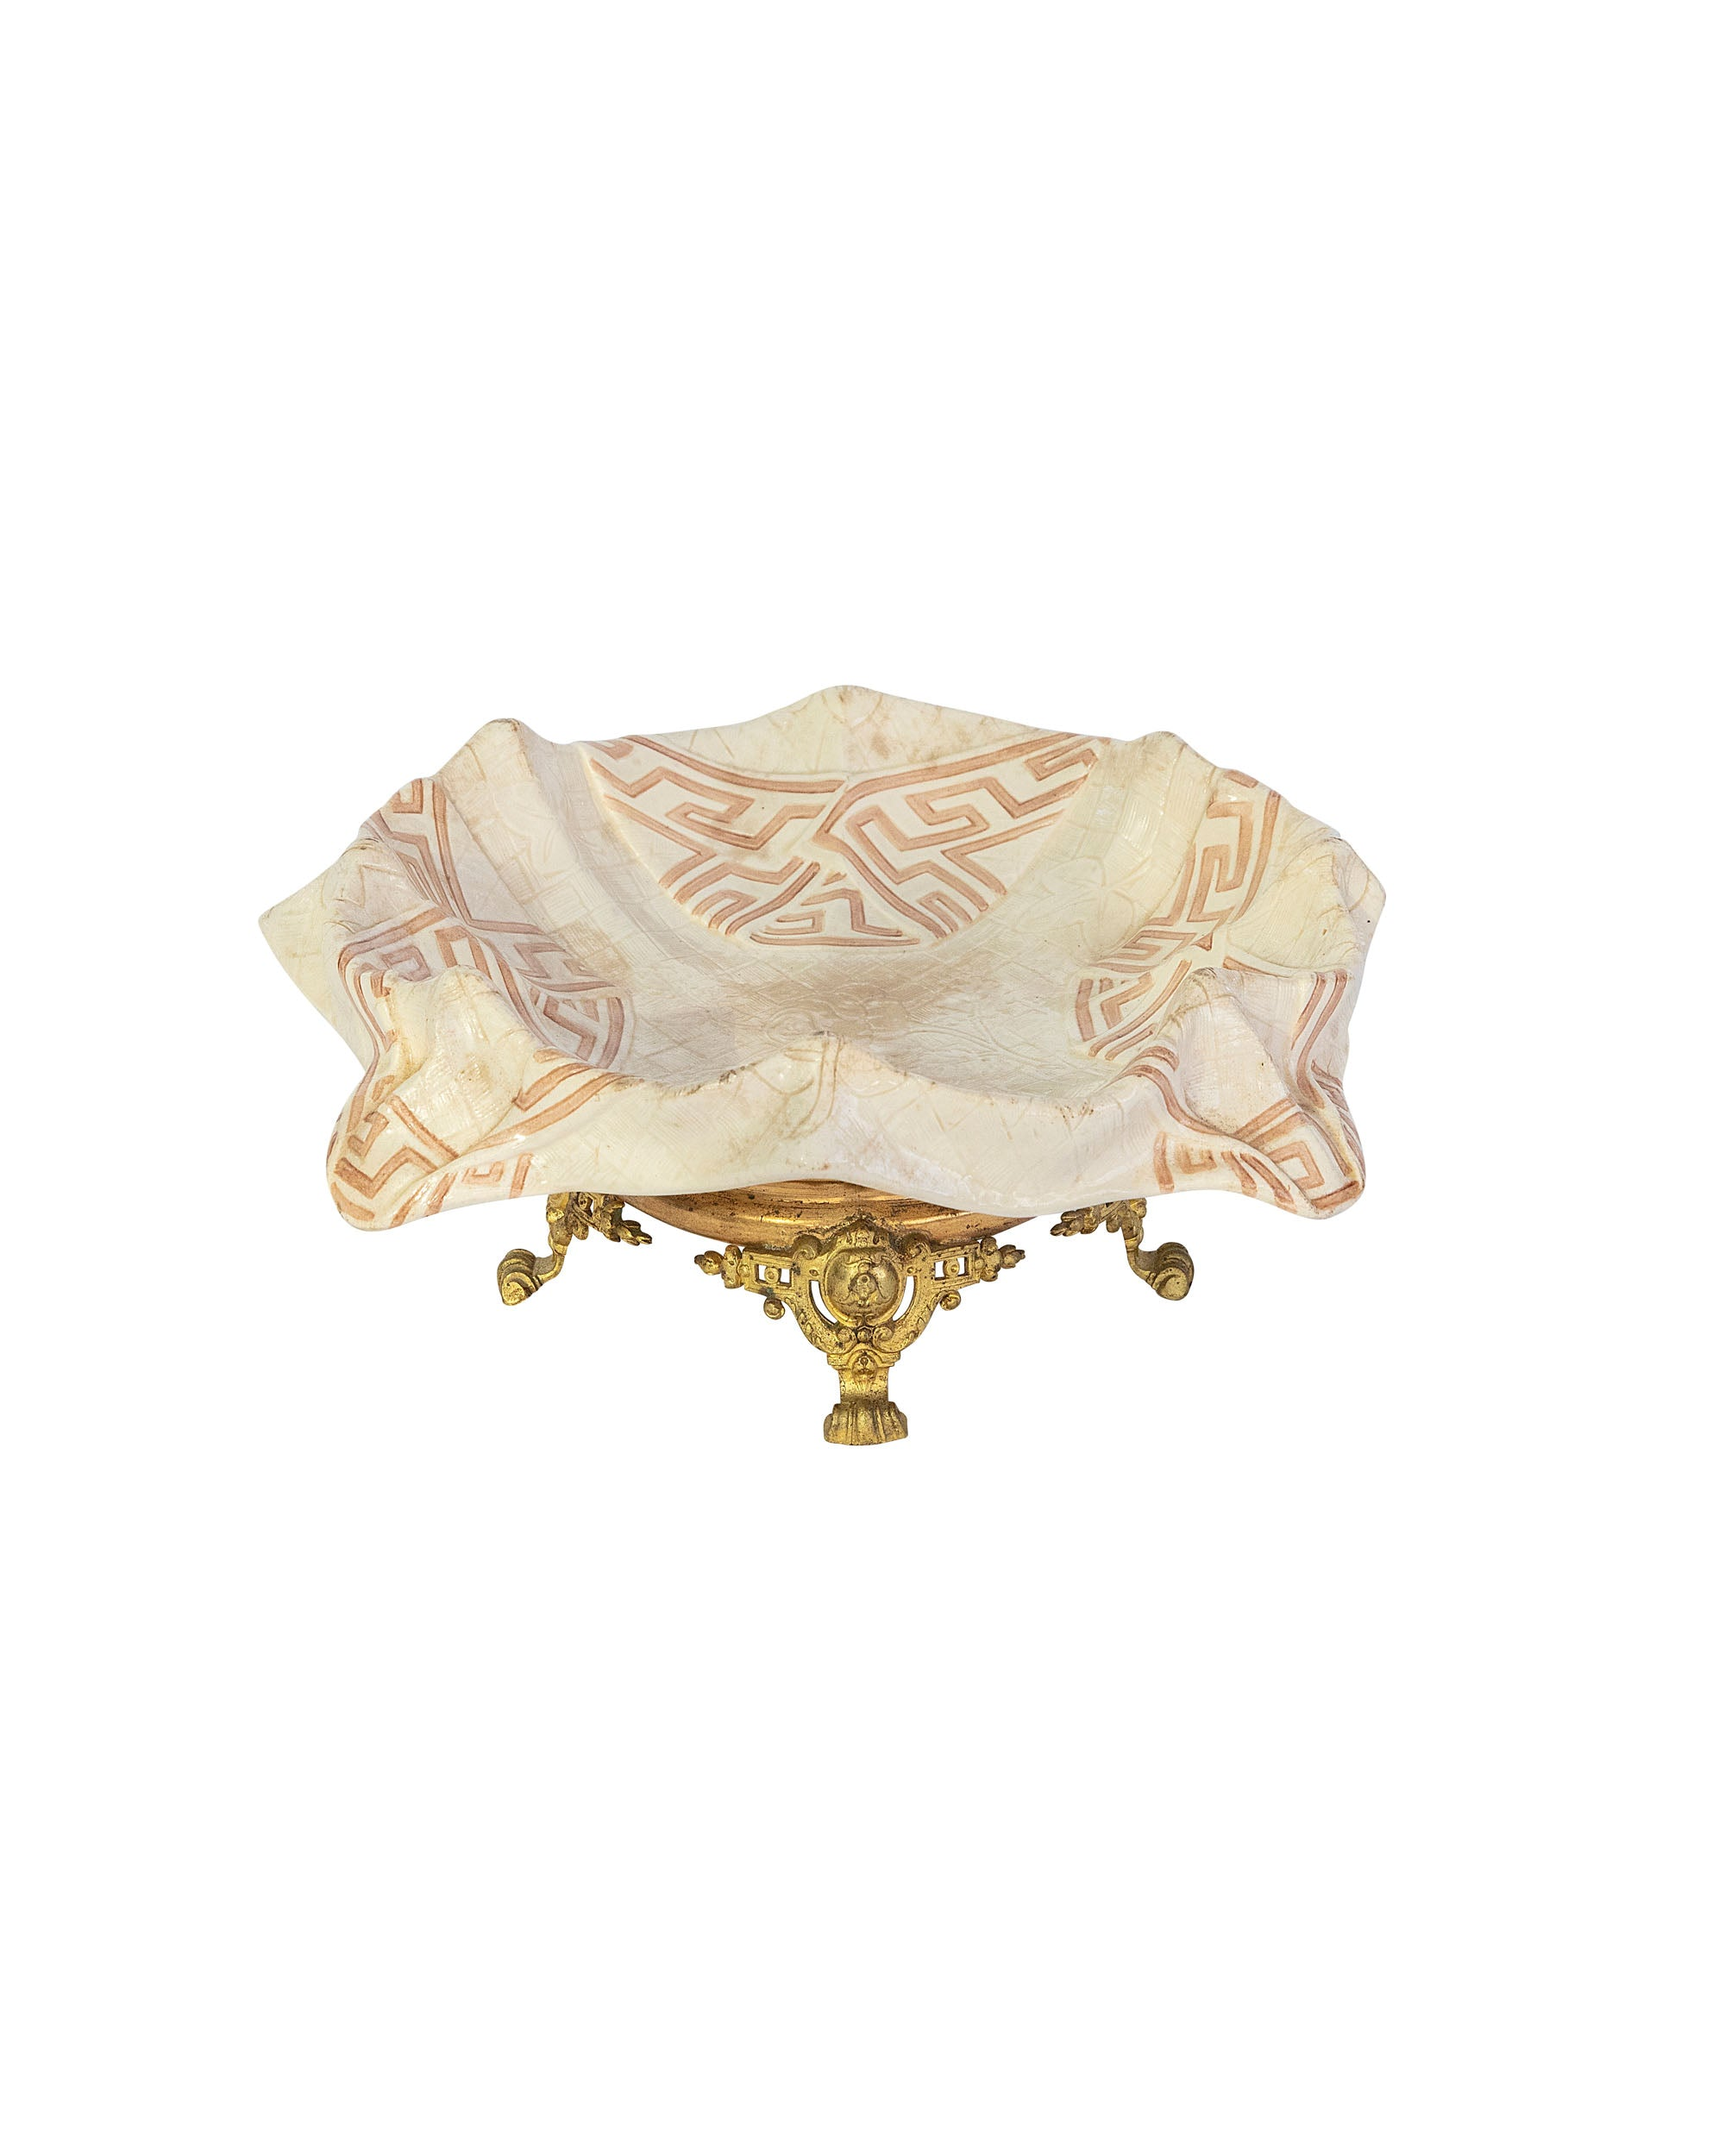 "Porcelain fruit bowl ""trompe l'Oeil"" shaped like a Serragamines' scarf mounted on a brass stand"